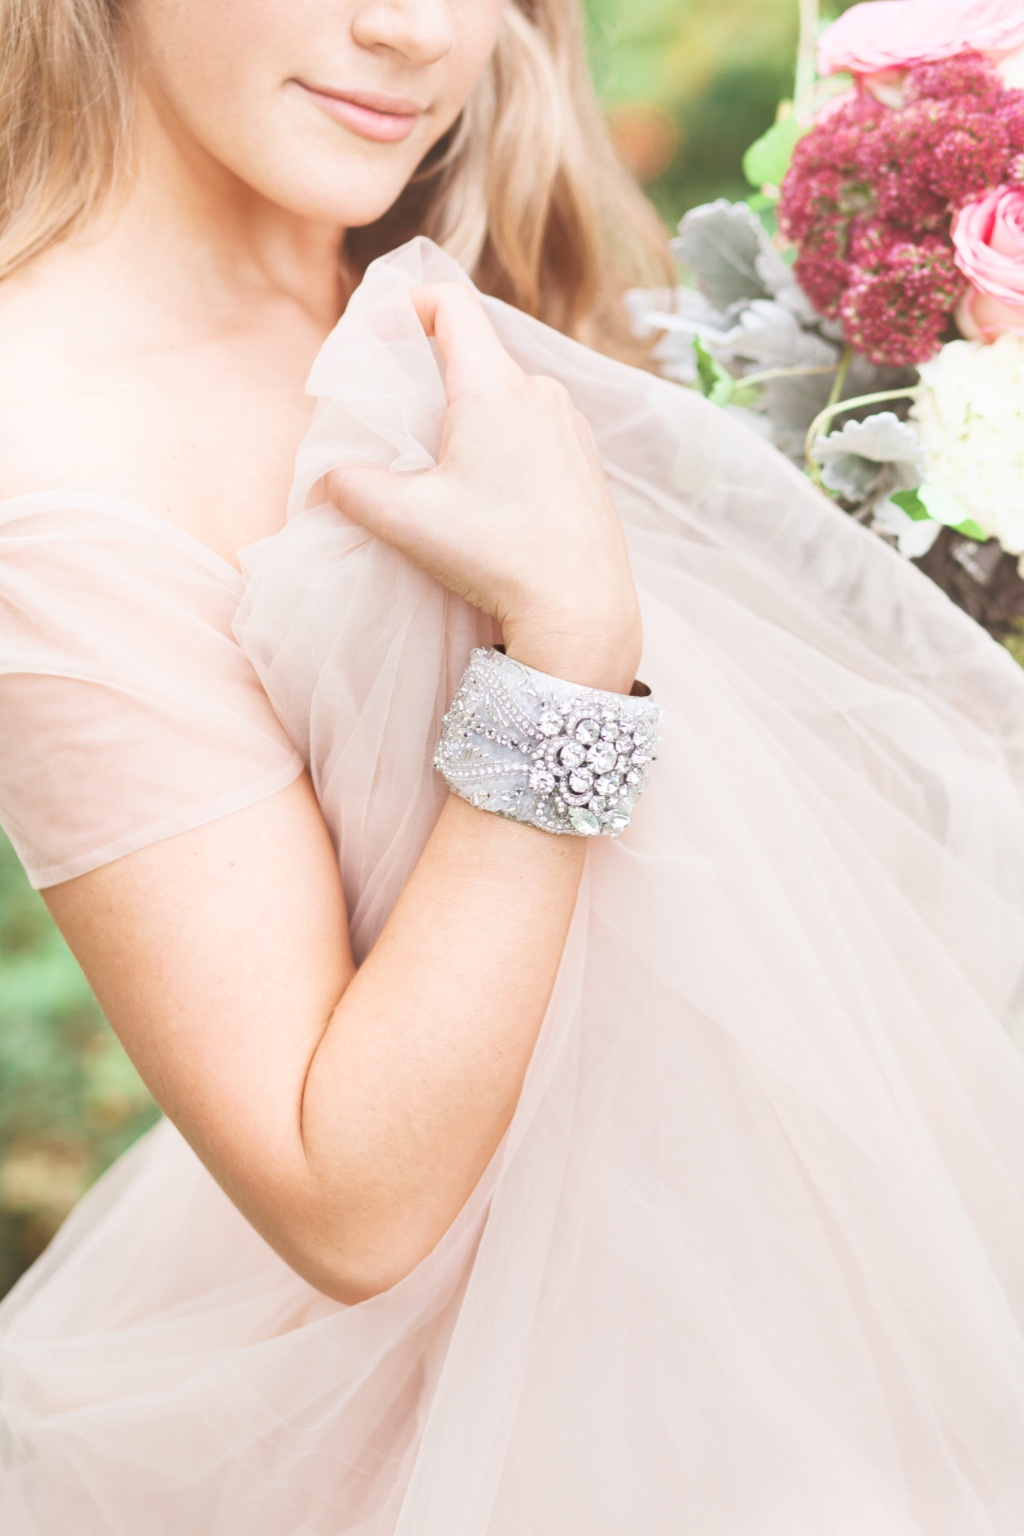 Make a glamorous statement as you walk into your wedding day.